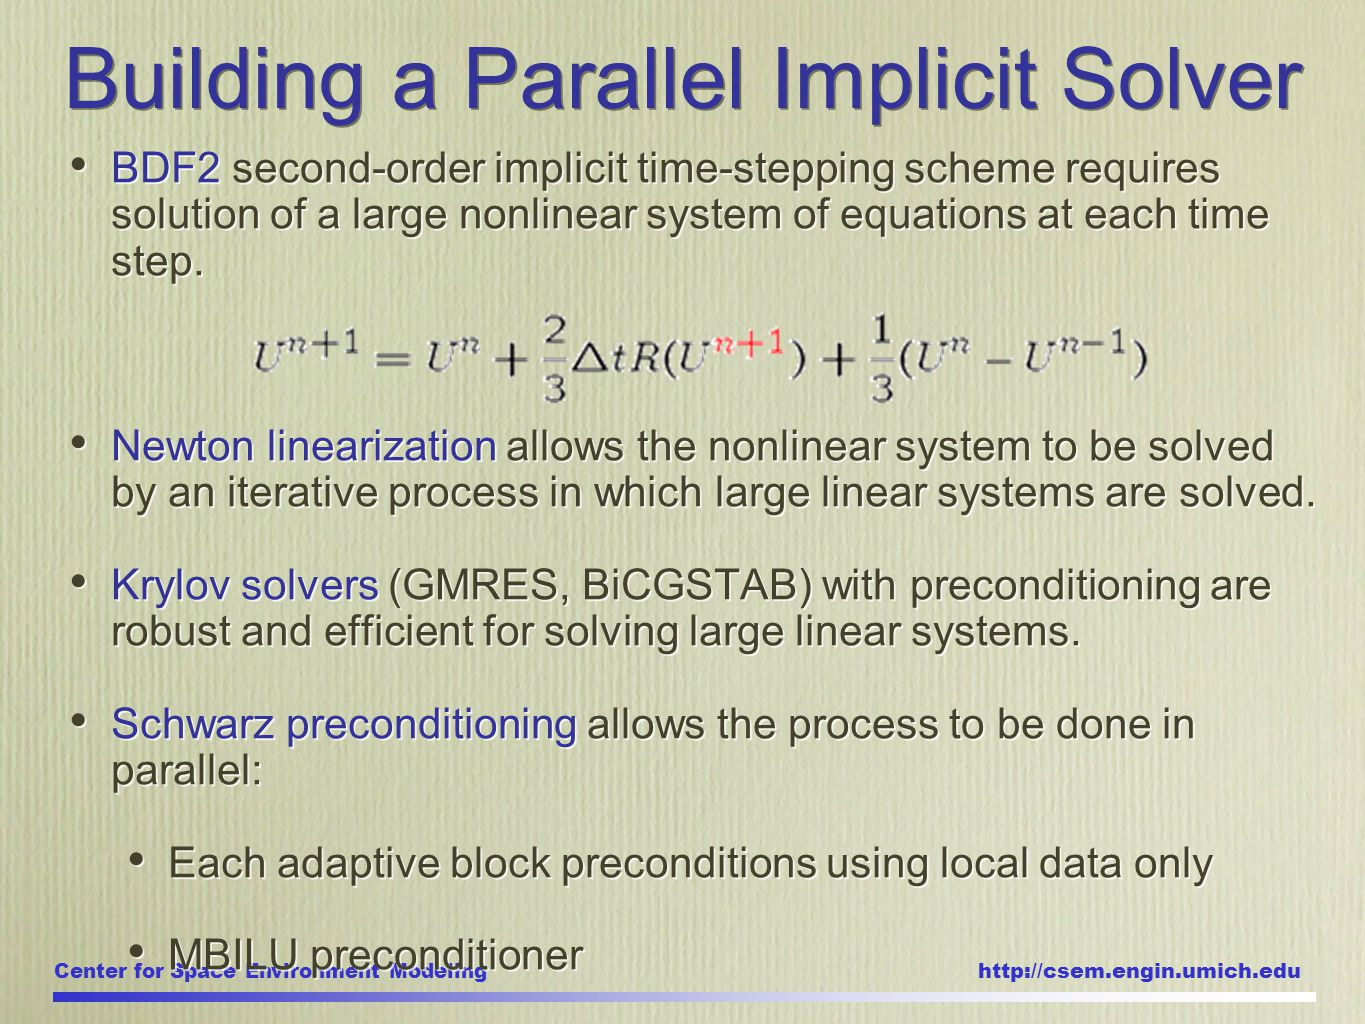 Center for Space Environment Modeling http://csem.engin.umich.edu BDF2 second-order implicit time-stepping scheme requires solution of a large nonlinear system of equations at each time step.